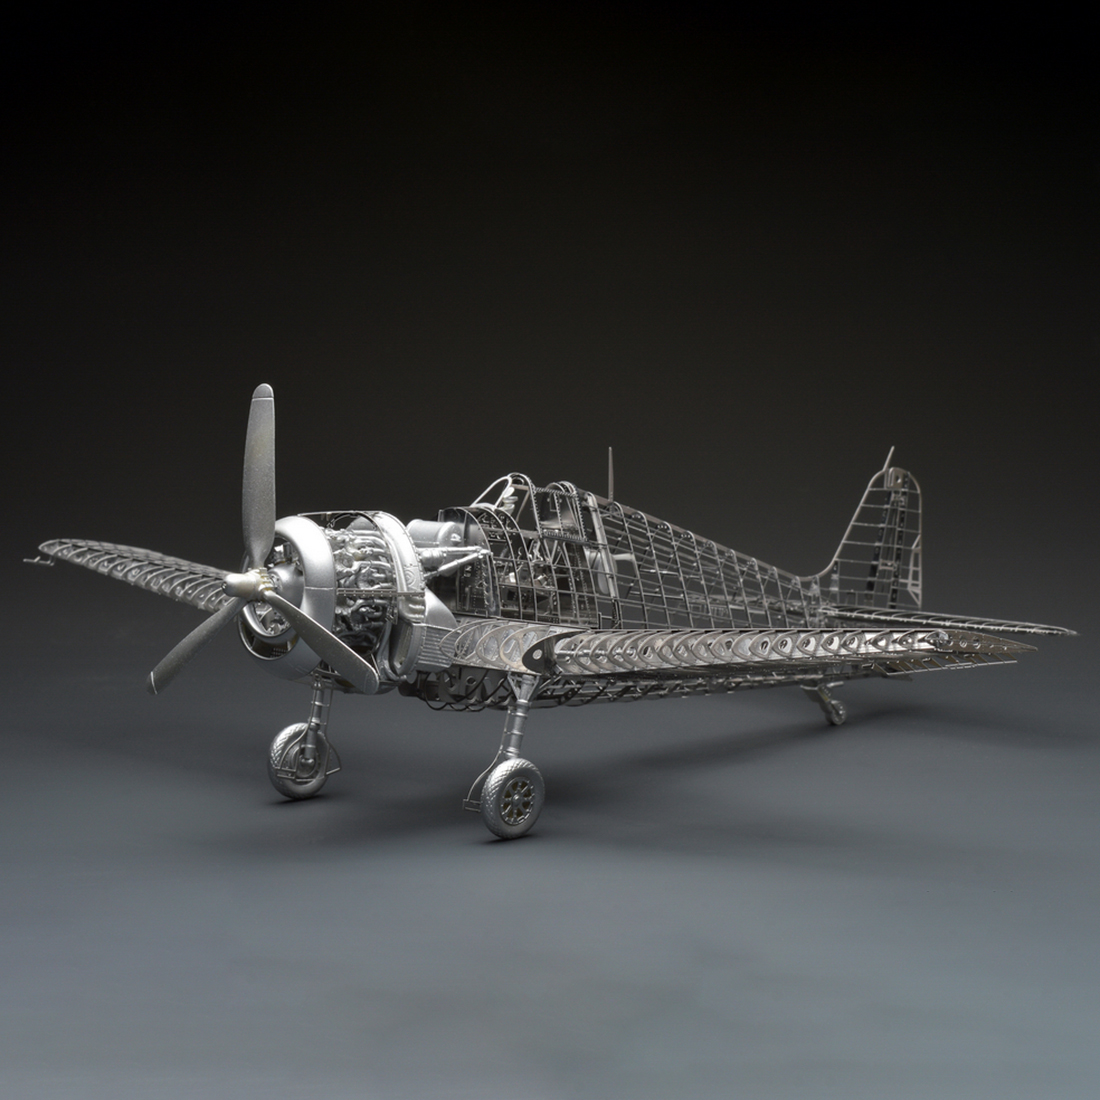 <font><b>1/48</b></font> F6F-5 Aircraft Model Kit Retro Wing Movable Fighter Decoration 3D Metal Assembly Model For Kids Birthdaty Gifts 2020 image